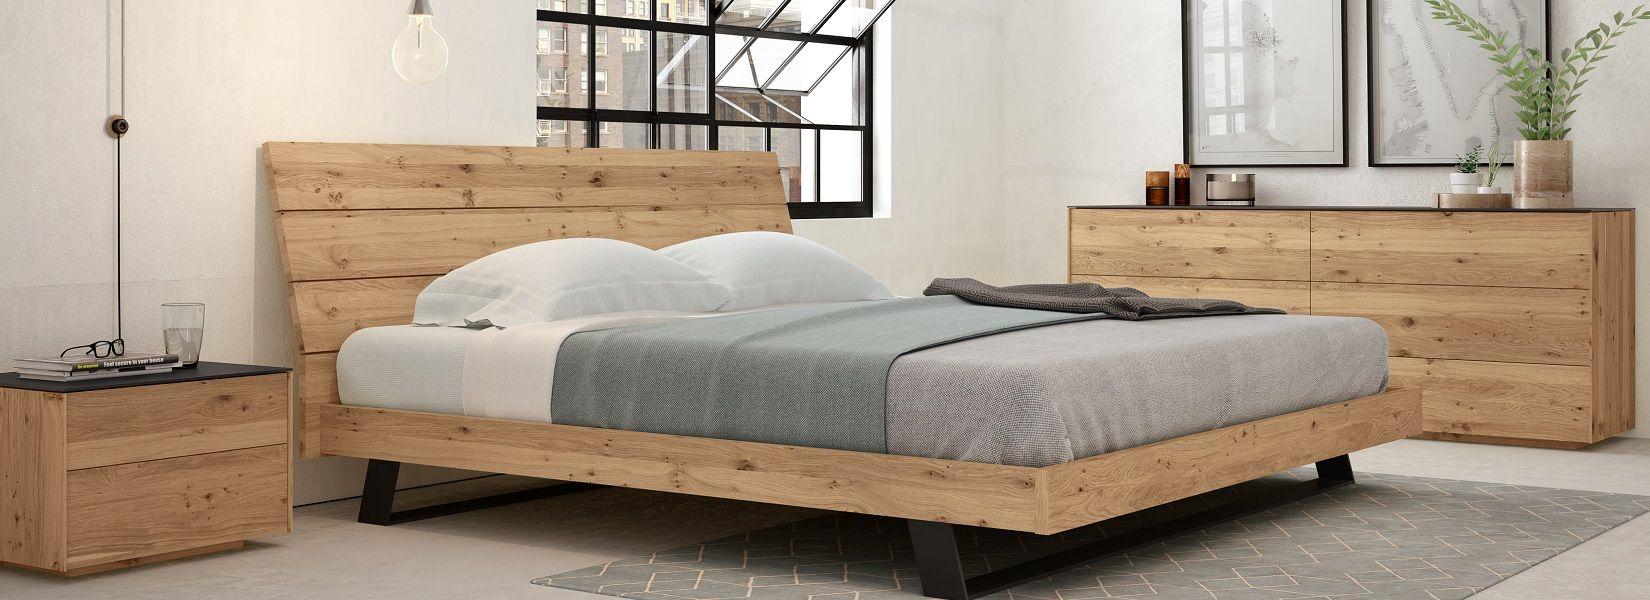 a3c29eed9299 All You Need to Know About Platform Bed Styles